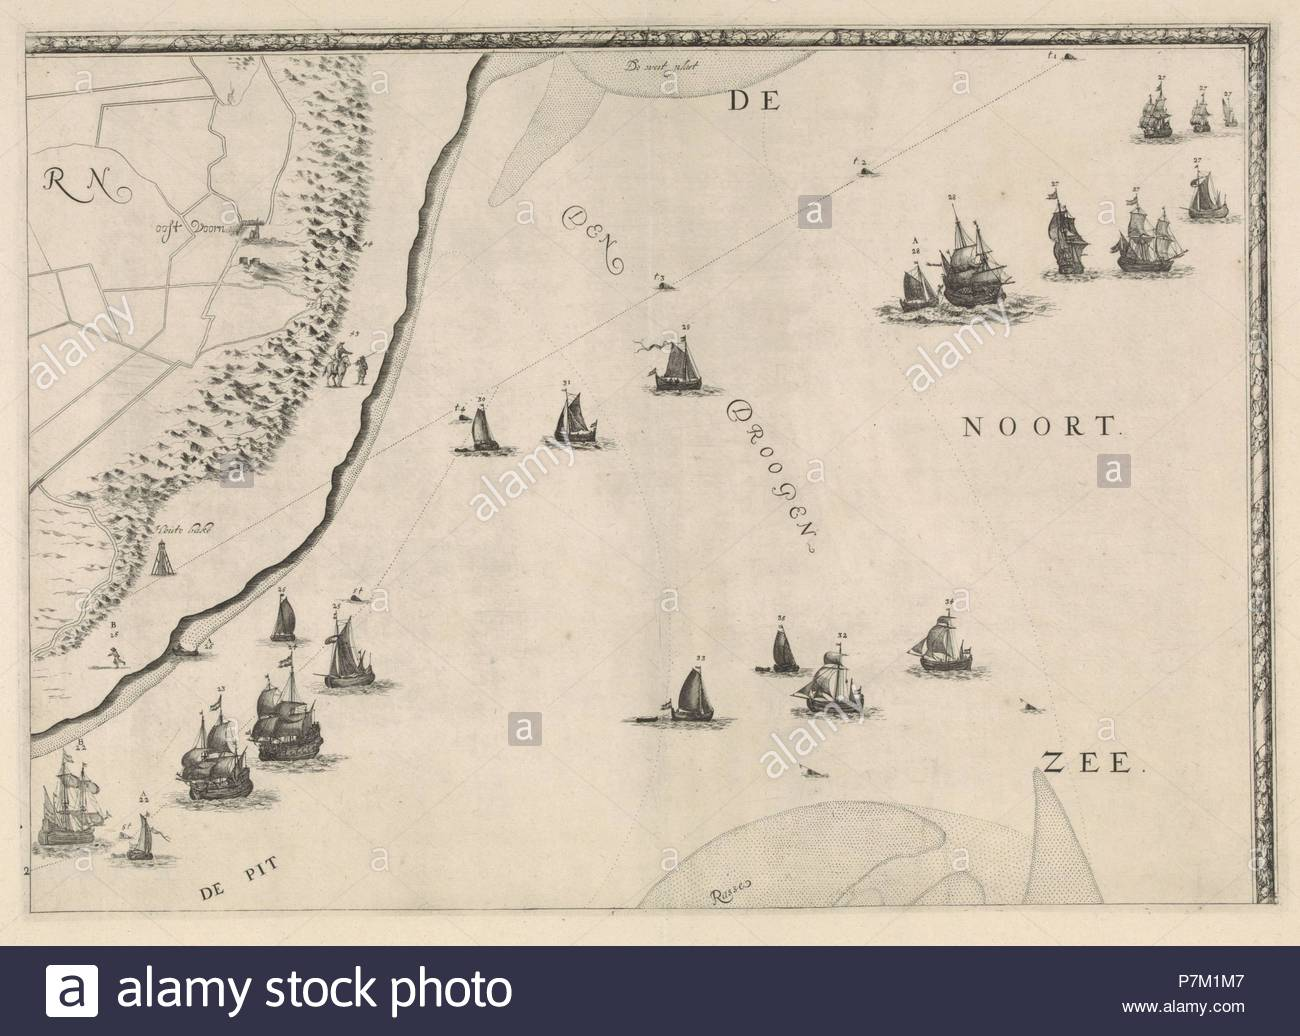 Map of the North Sea and the coast of Holland, Jacob Quack, 1665. - Stock Image